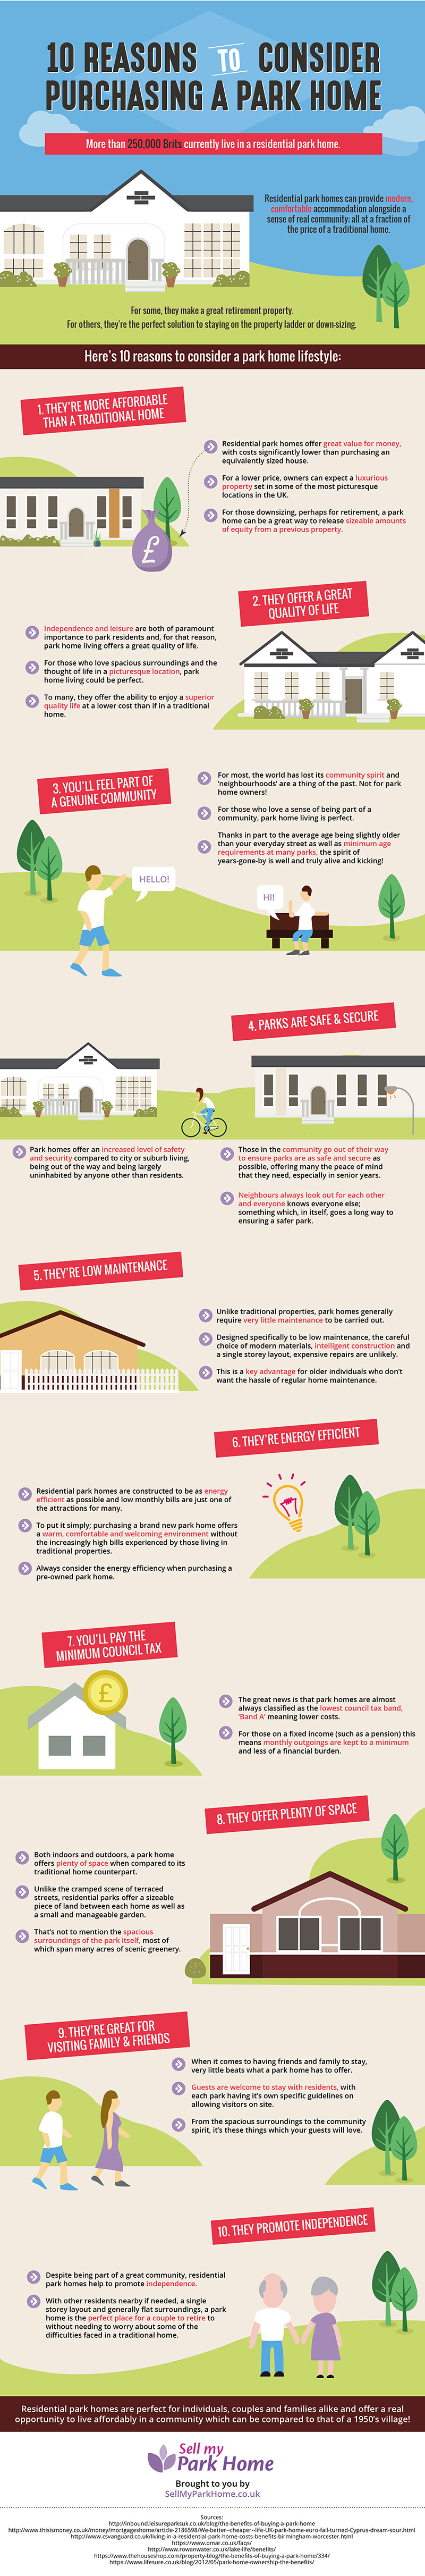 10 Reasons To Consider Purchasing A Park Home by Sell My Group